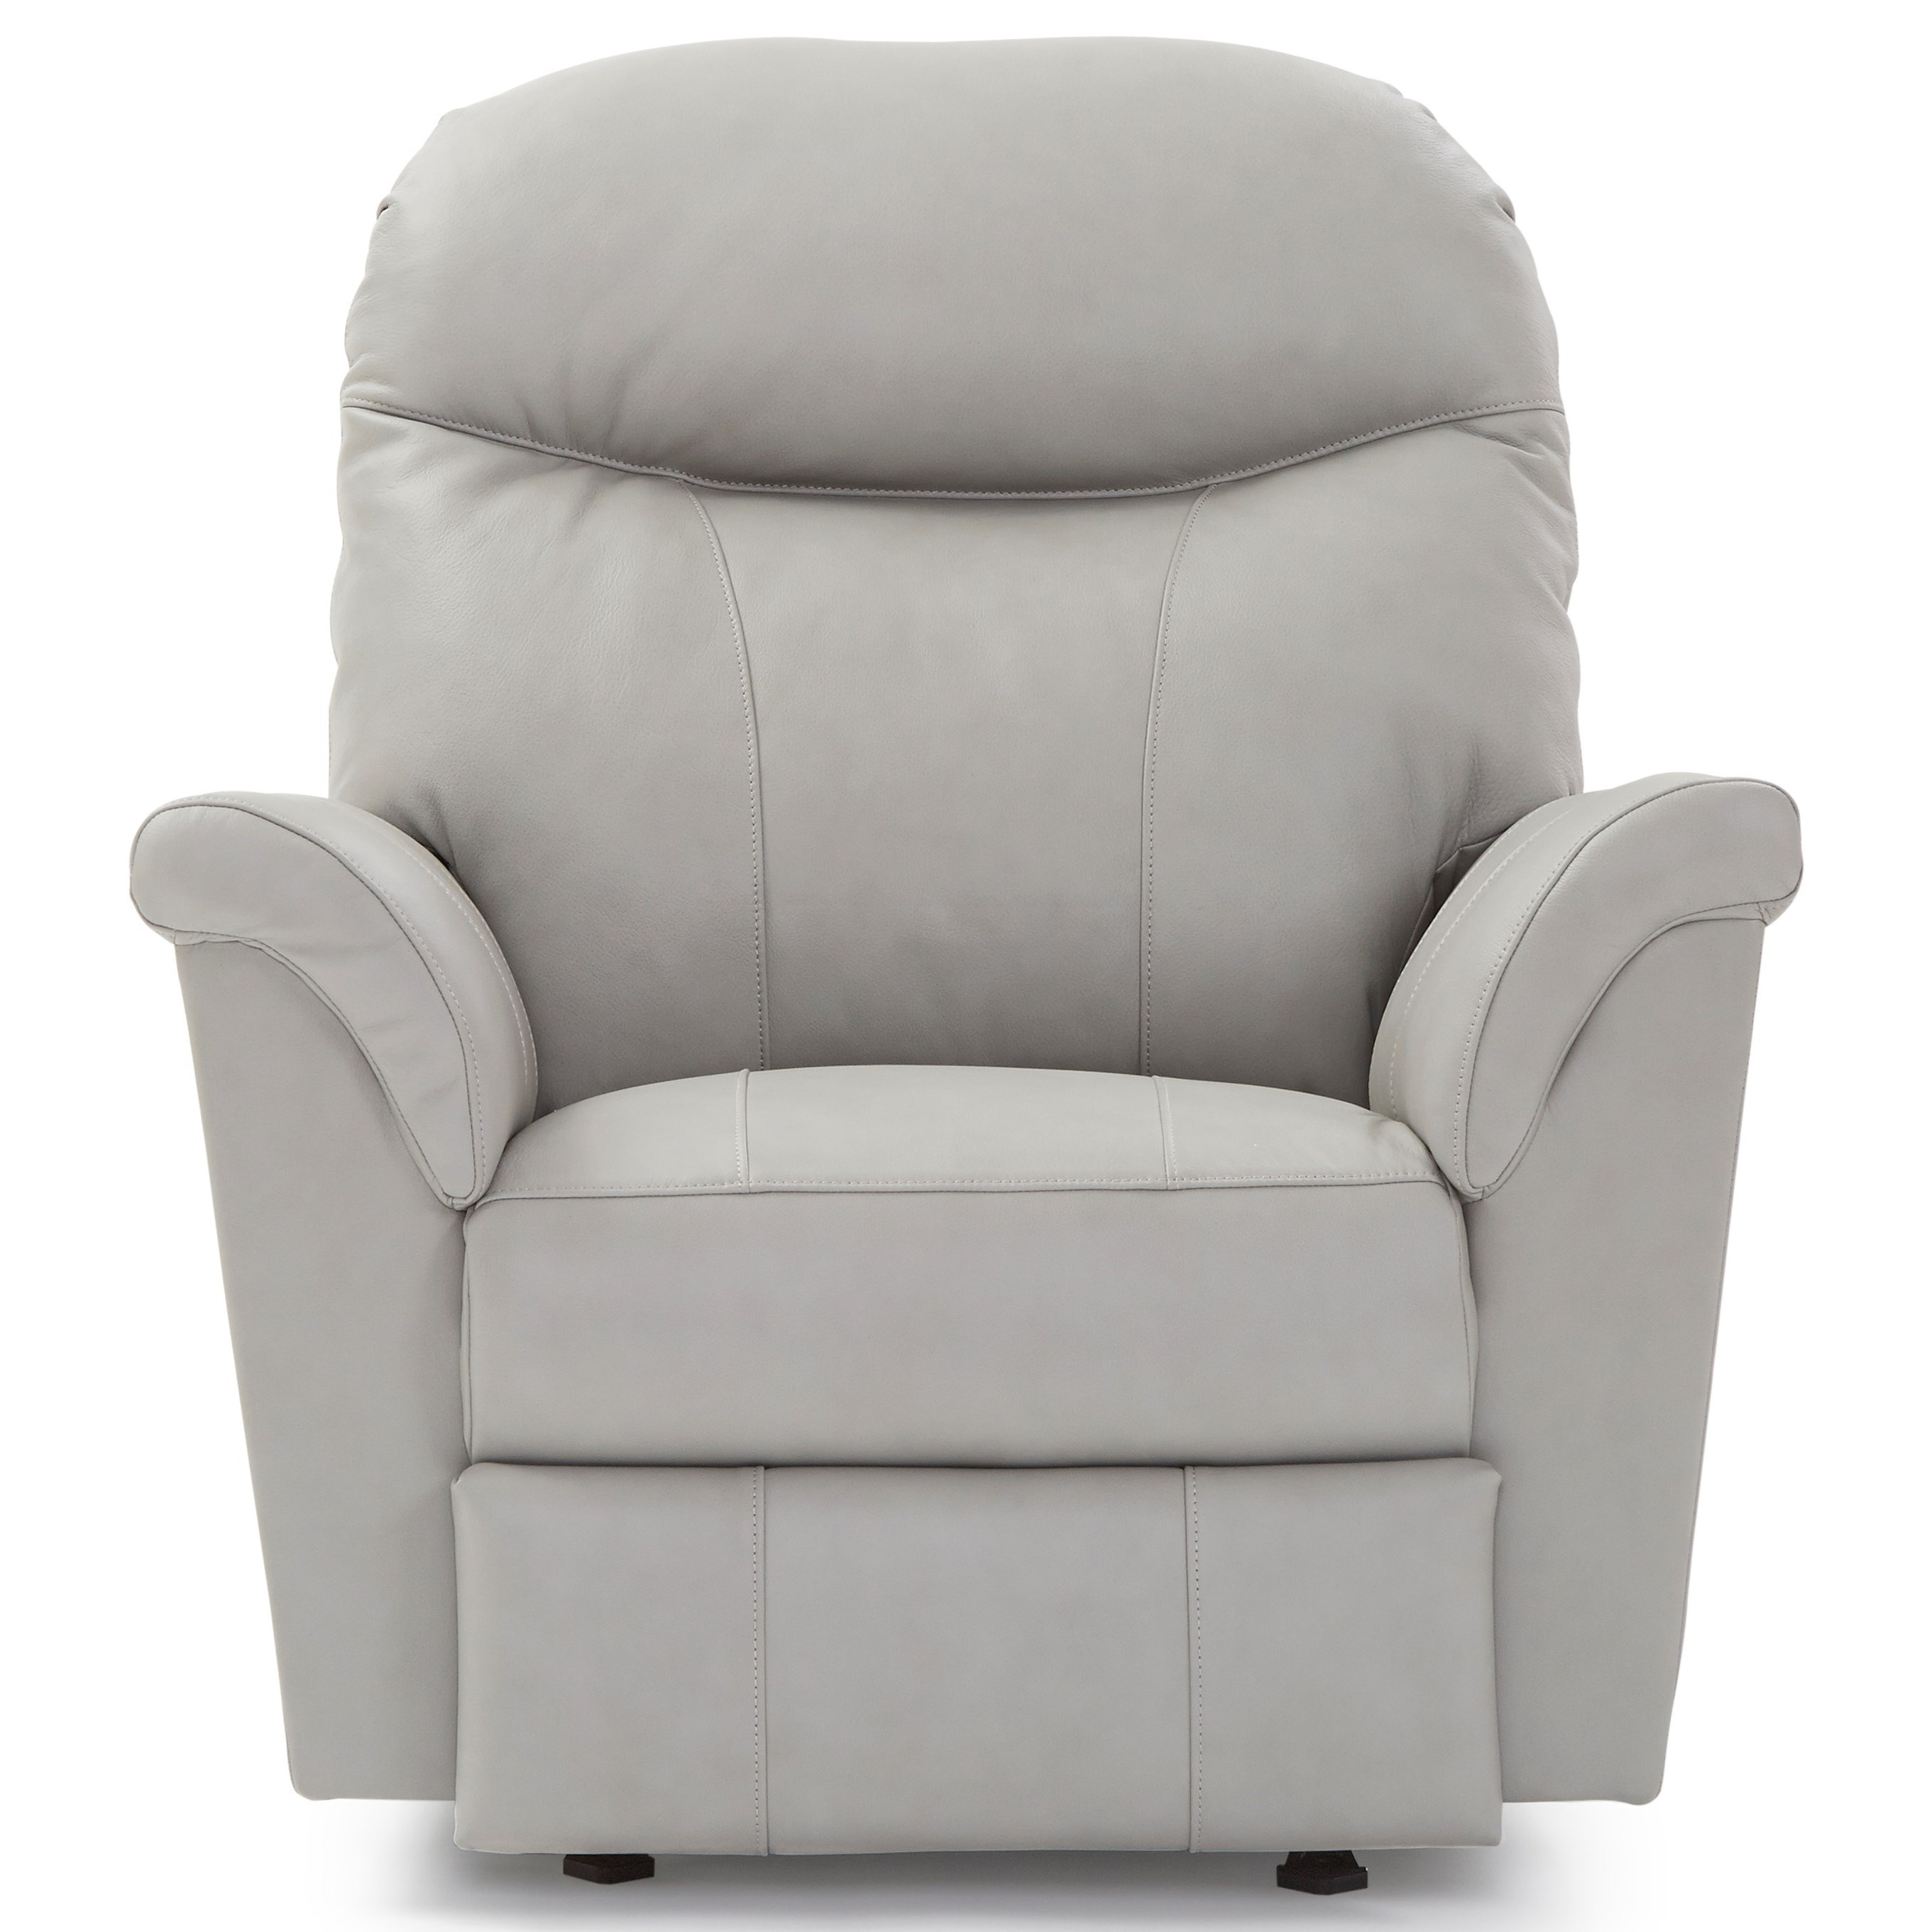 Caitlin Swivel Glider Recliner by Best Home Furnishings at Best Home Furnishings